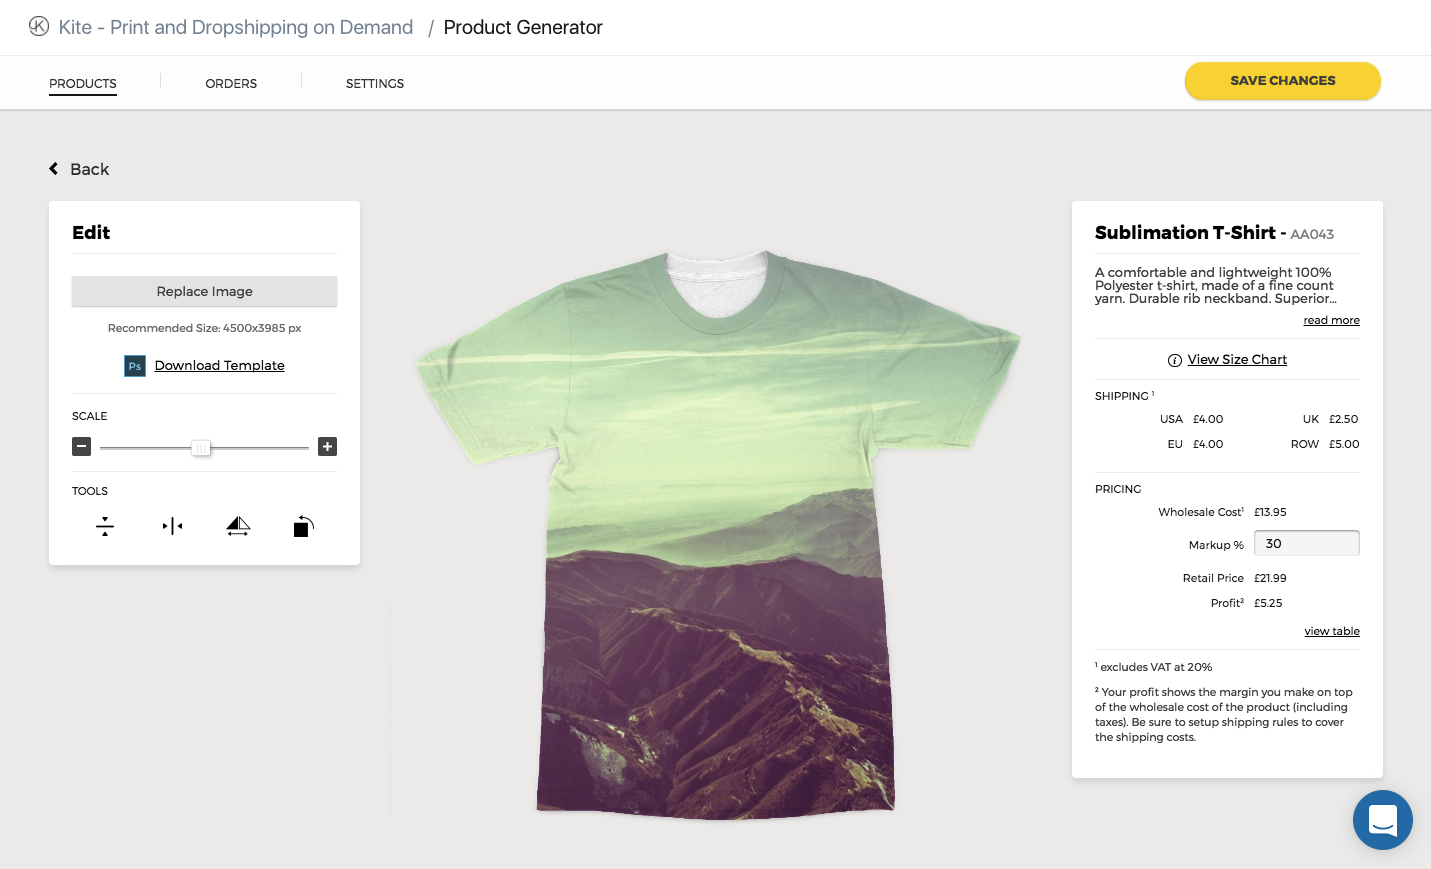 9c3743be2ed Where is the best place for printing t-shirts and dropshipping online